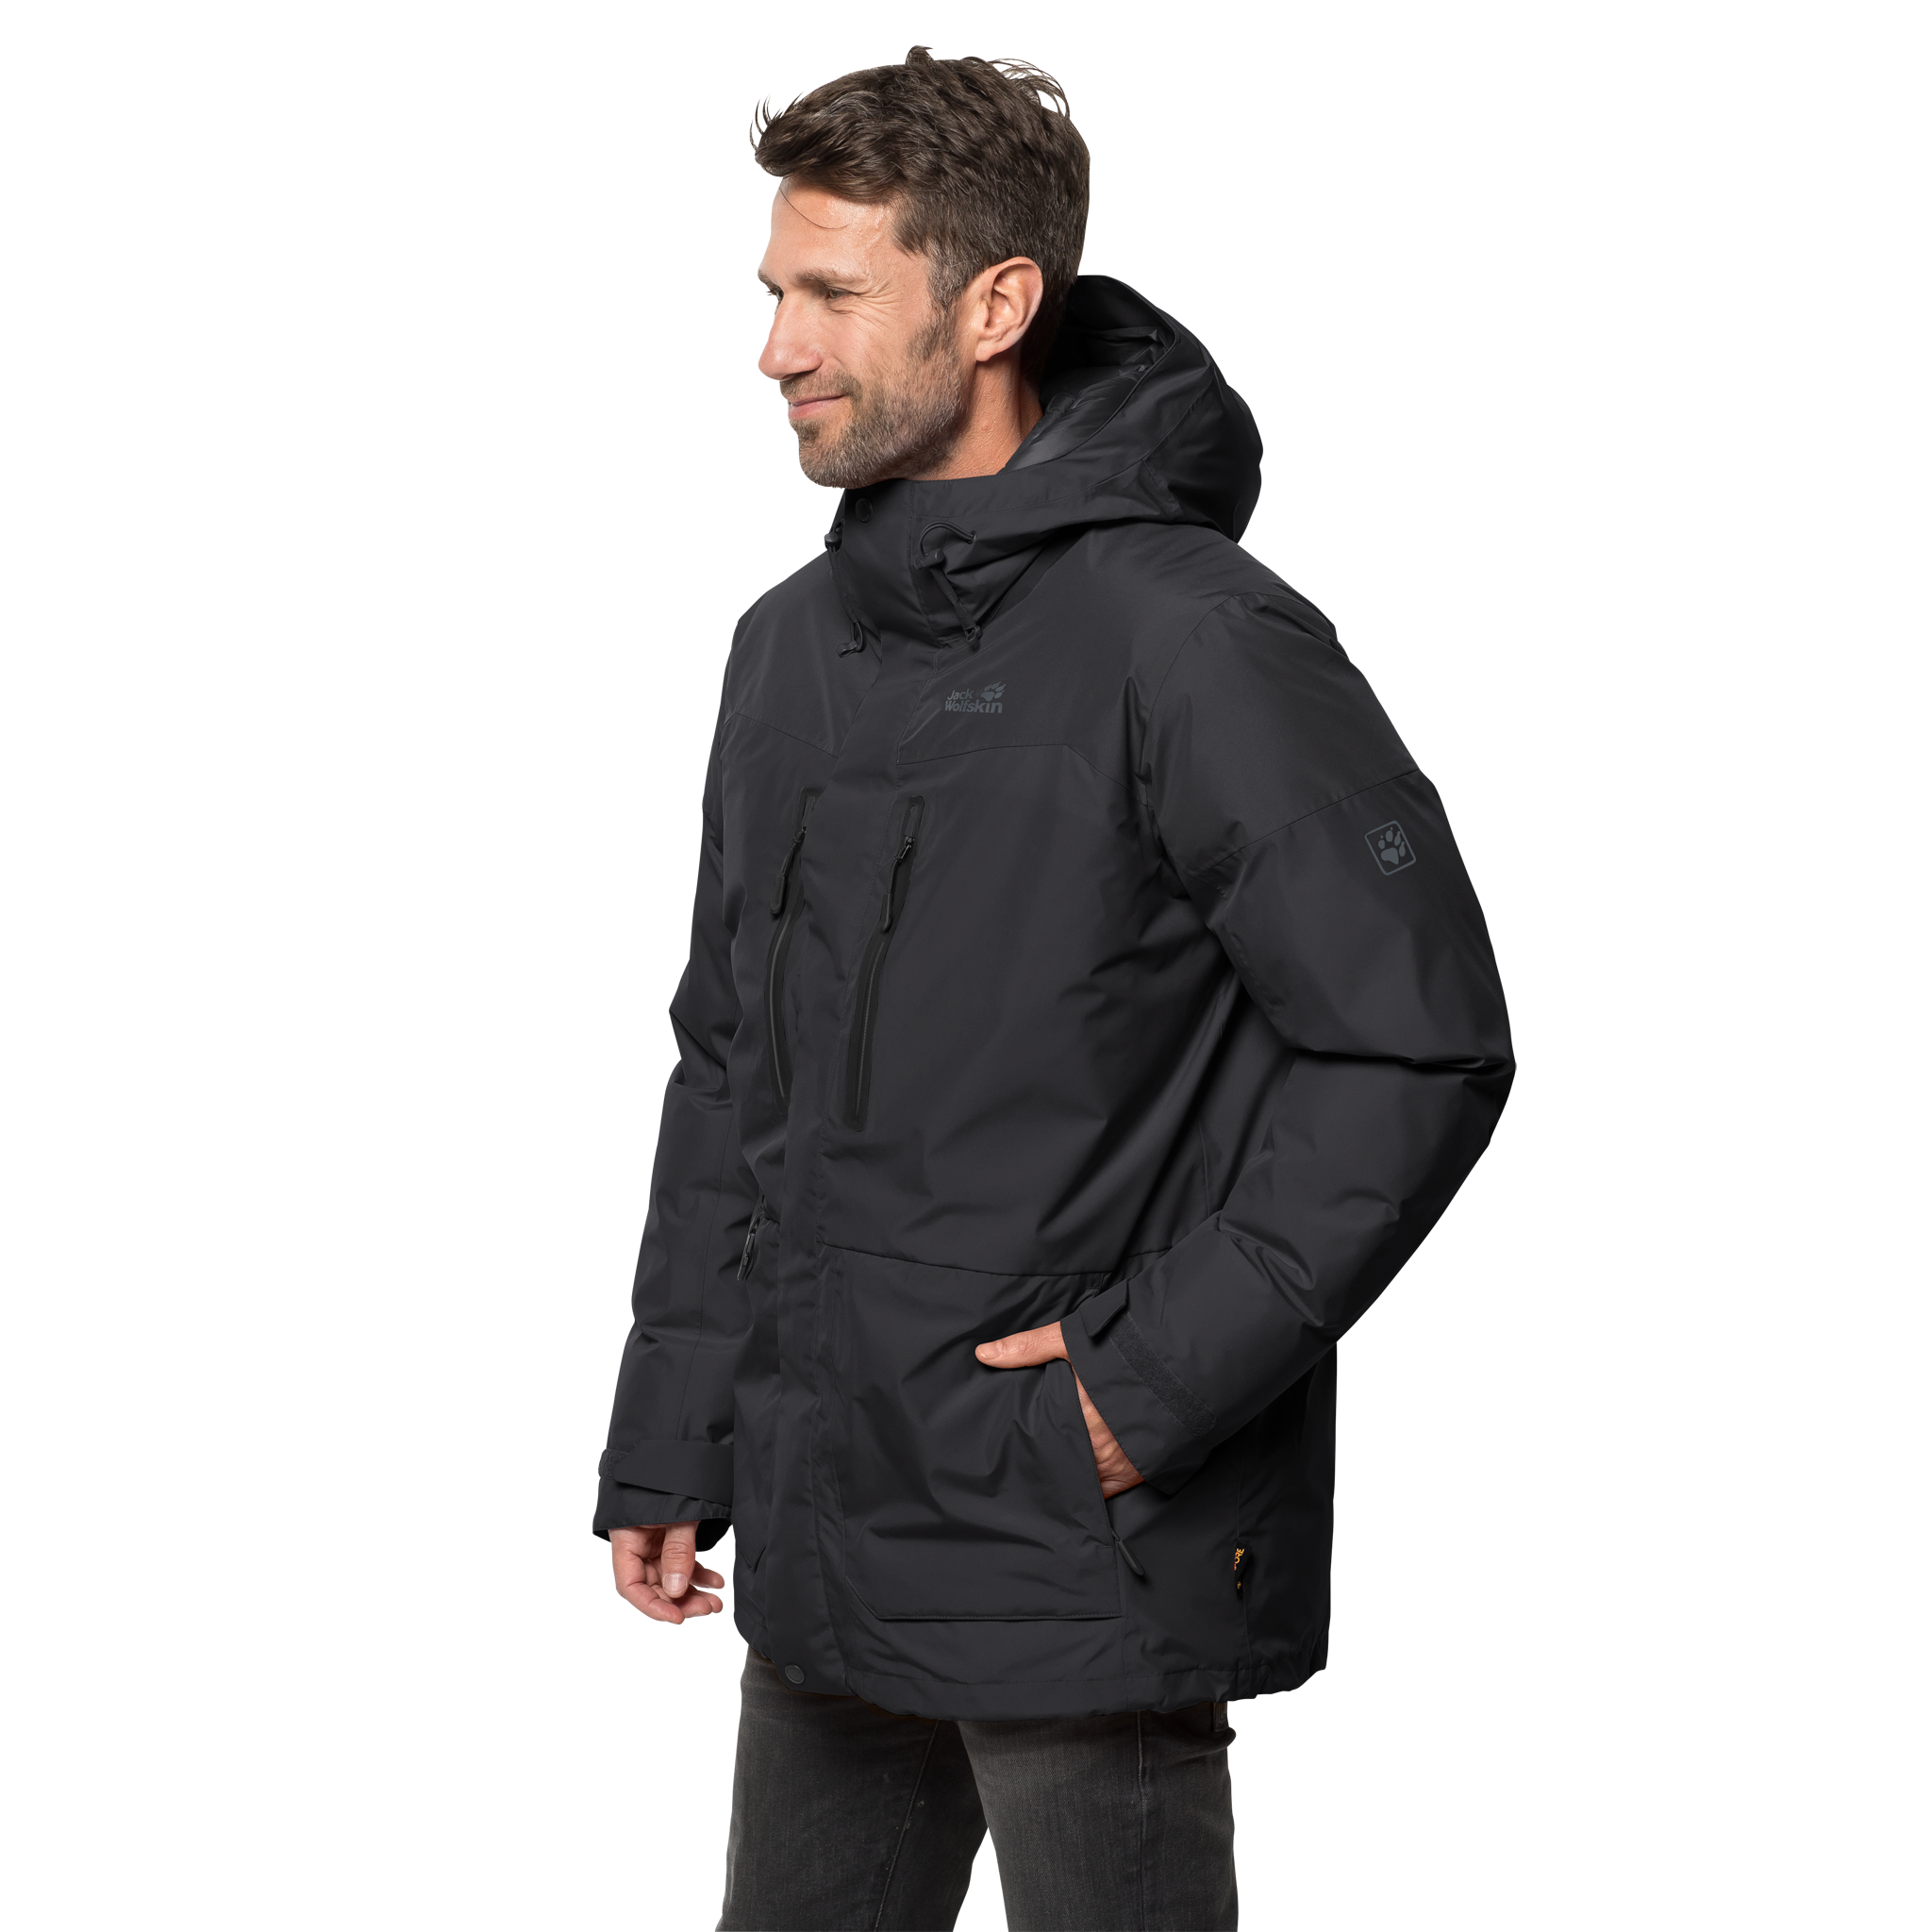 Куртка мужская NORTH ICE PARKA Jack Wolfskin — фото 4